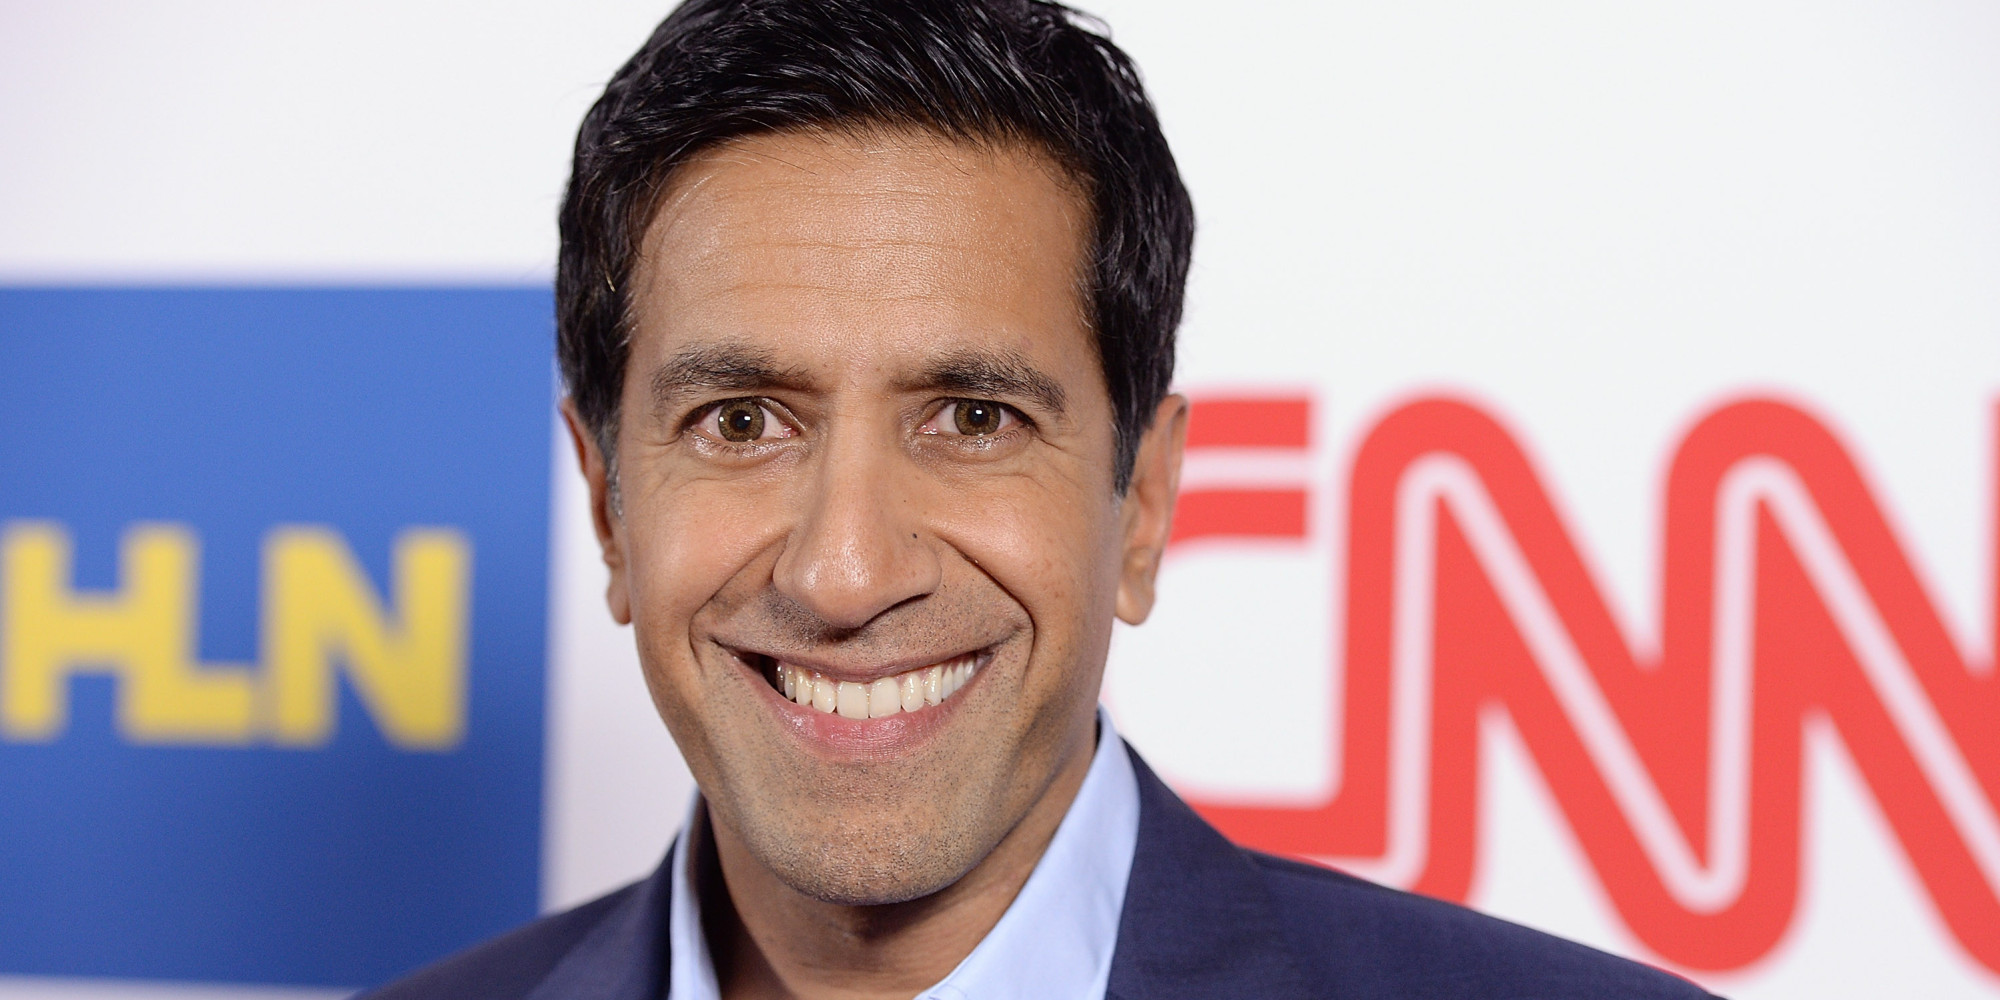 Sanjay Gupta earned a  million dollar salary, leaving the net worth at 21 million in 2017